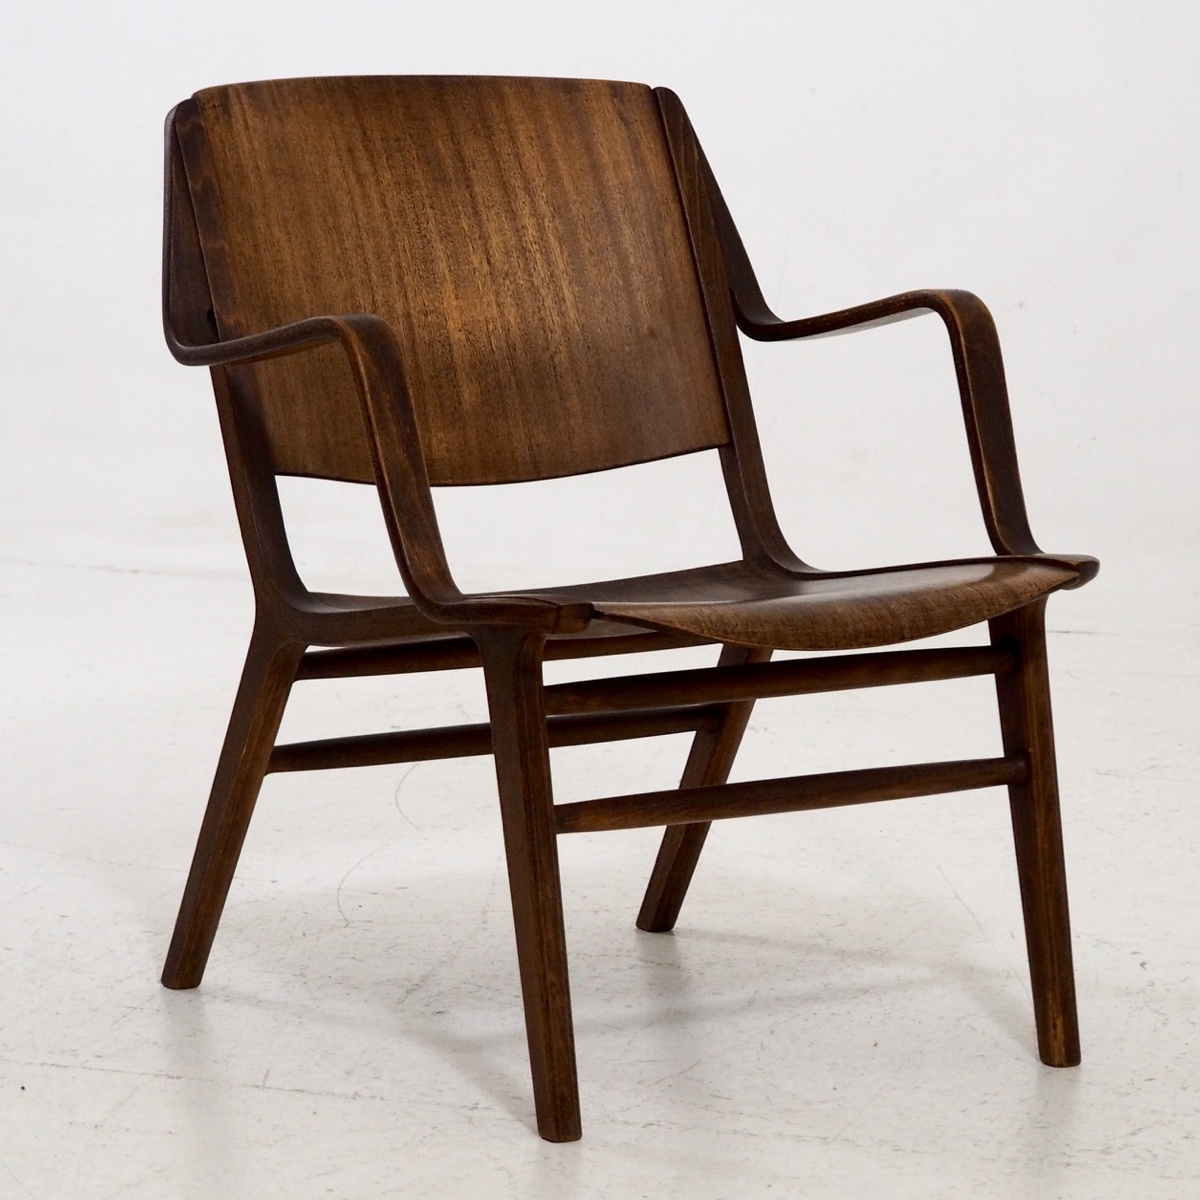 Wooden chair.jpg